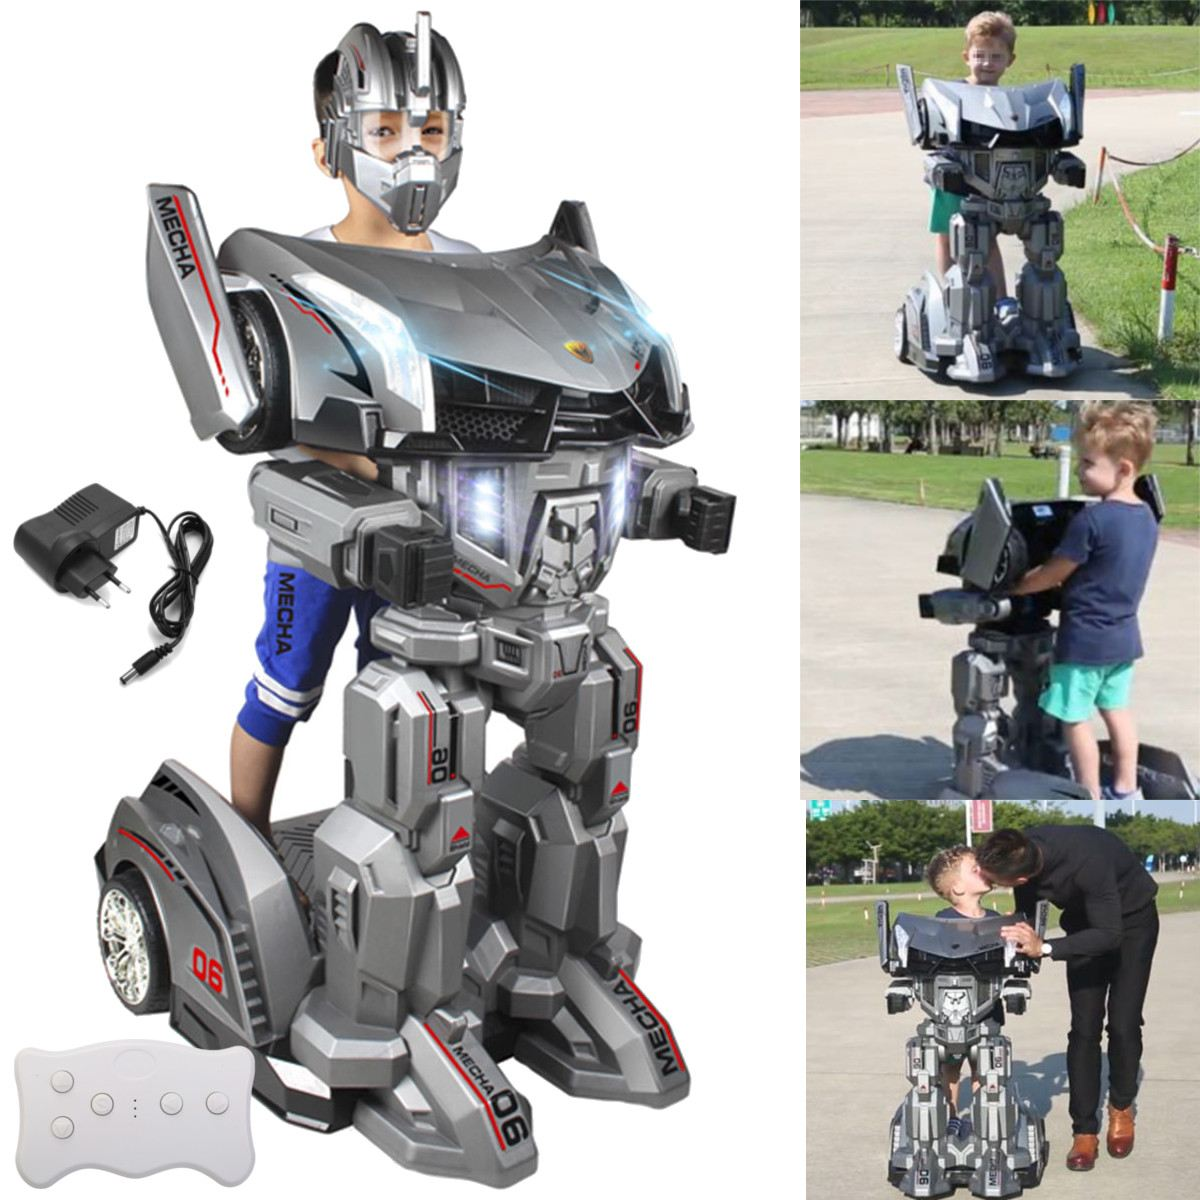 Remote Control Ride On Humanoid Robot Car Toy Movable Transformer Car With Robot Helmet For Kids Children Gift Amusement Park hot sales frp kiddie ride on toy cars coin operated kiddie ride coin swing riders for kids swing machine